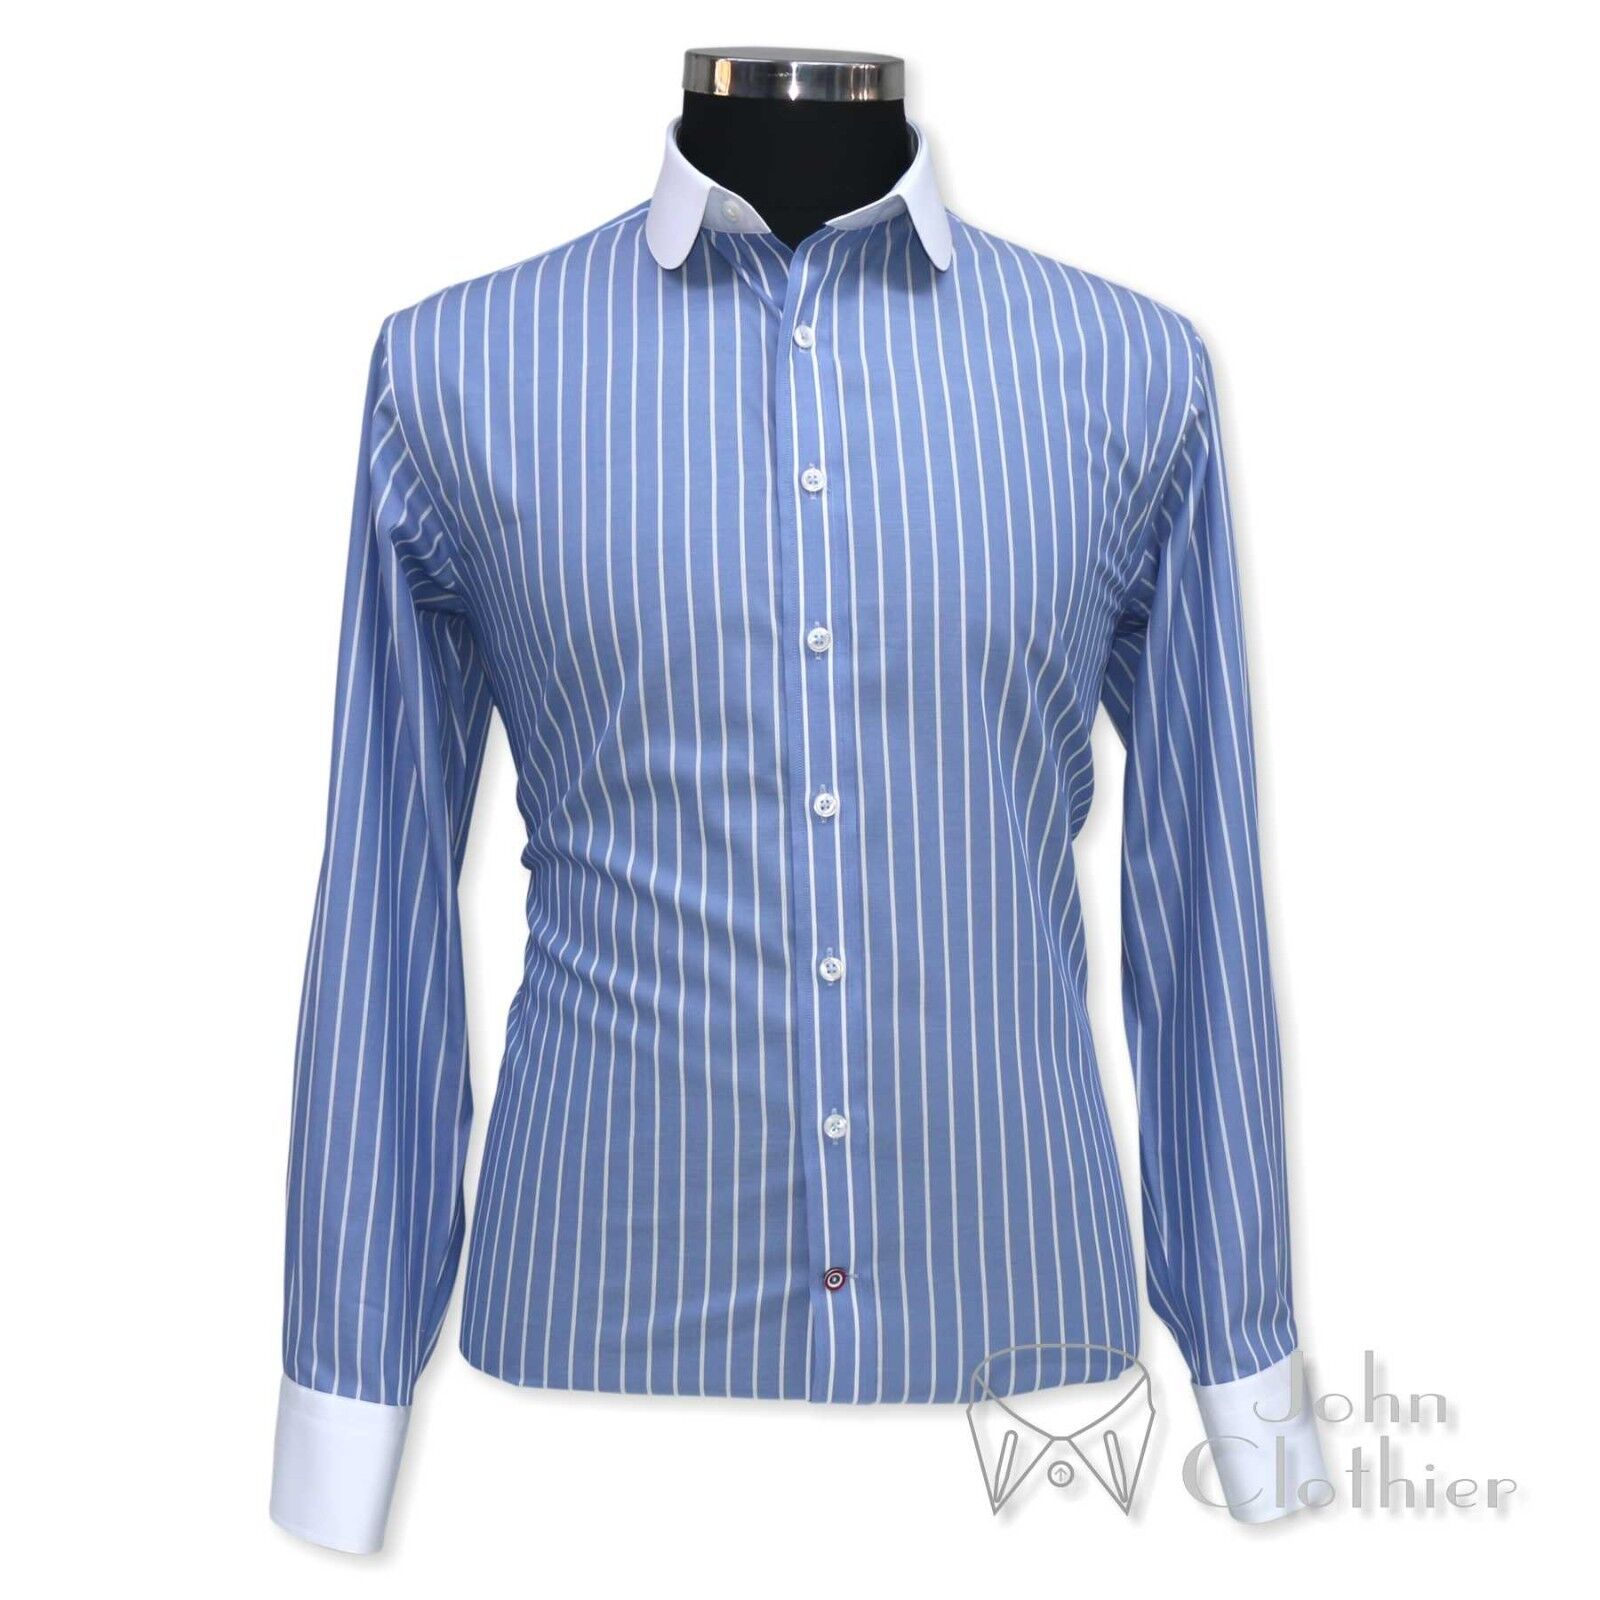 Penny collar shirts Blau Weiß stripes Club Round Bankers cotton shirt for Men